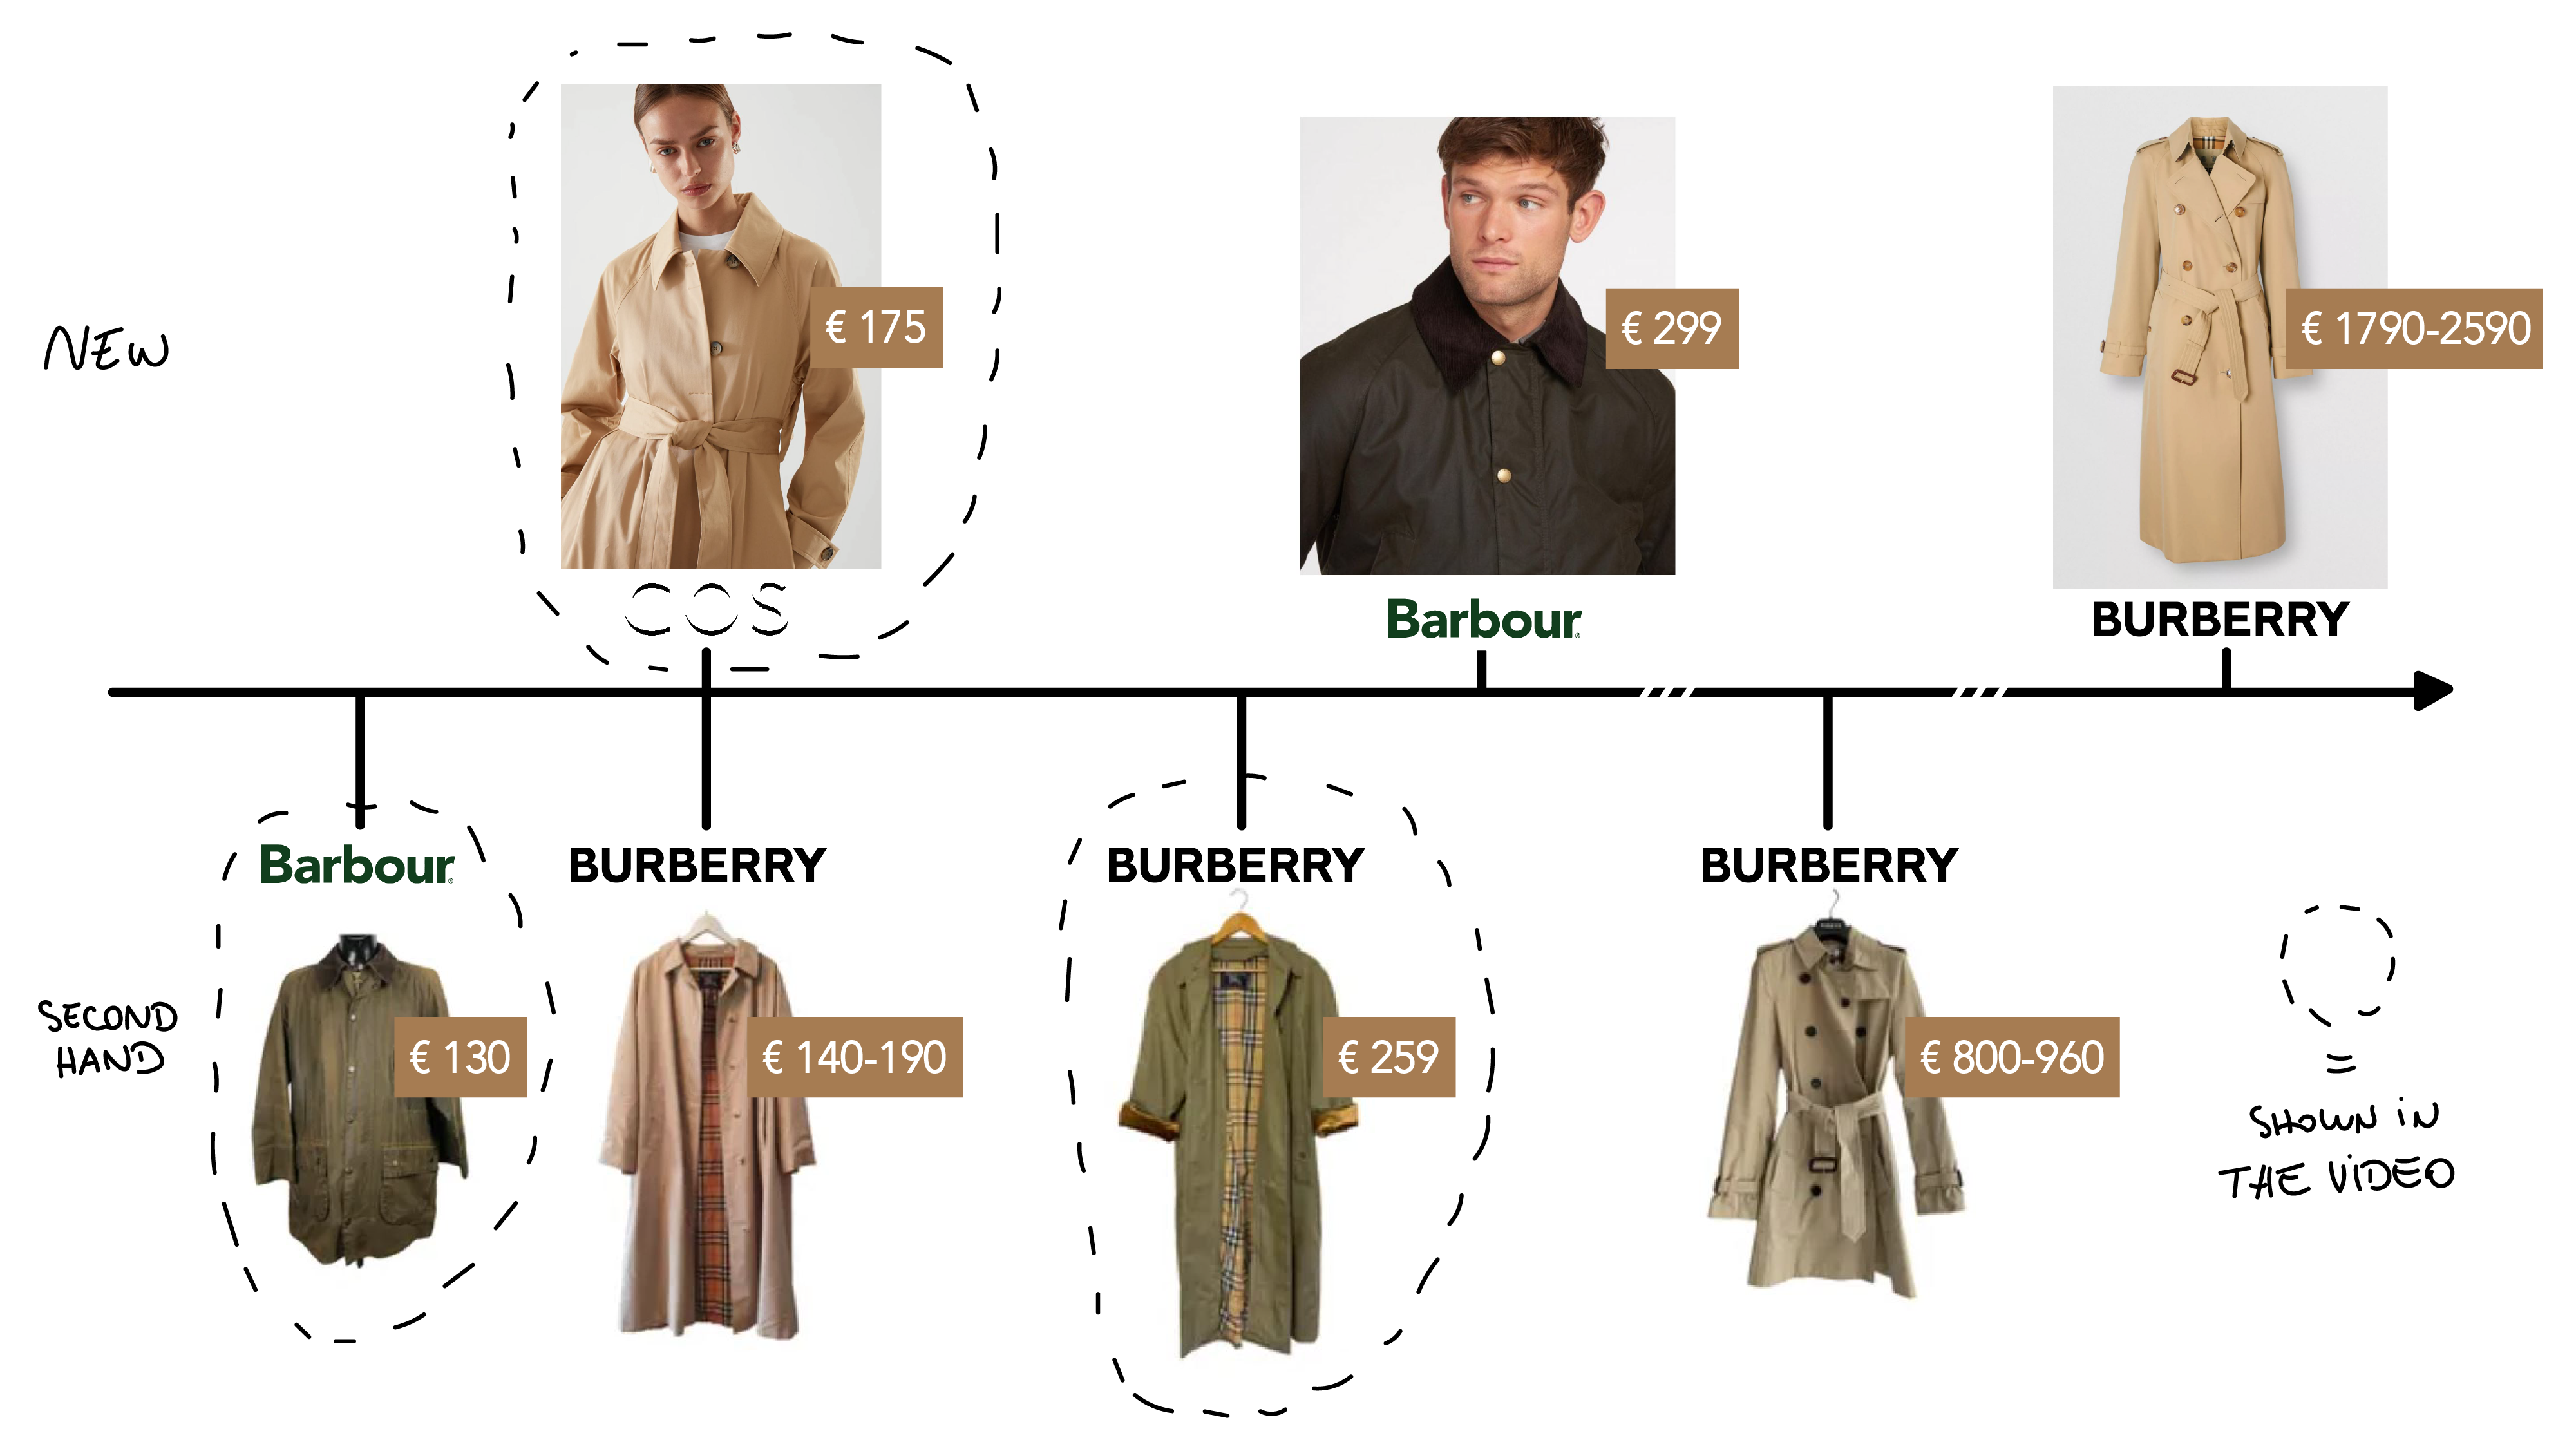 justine leconte tips outerwear blog post trench coats fast fashion good quality burberry barbour cos